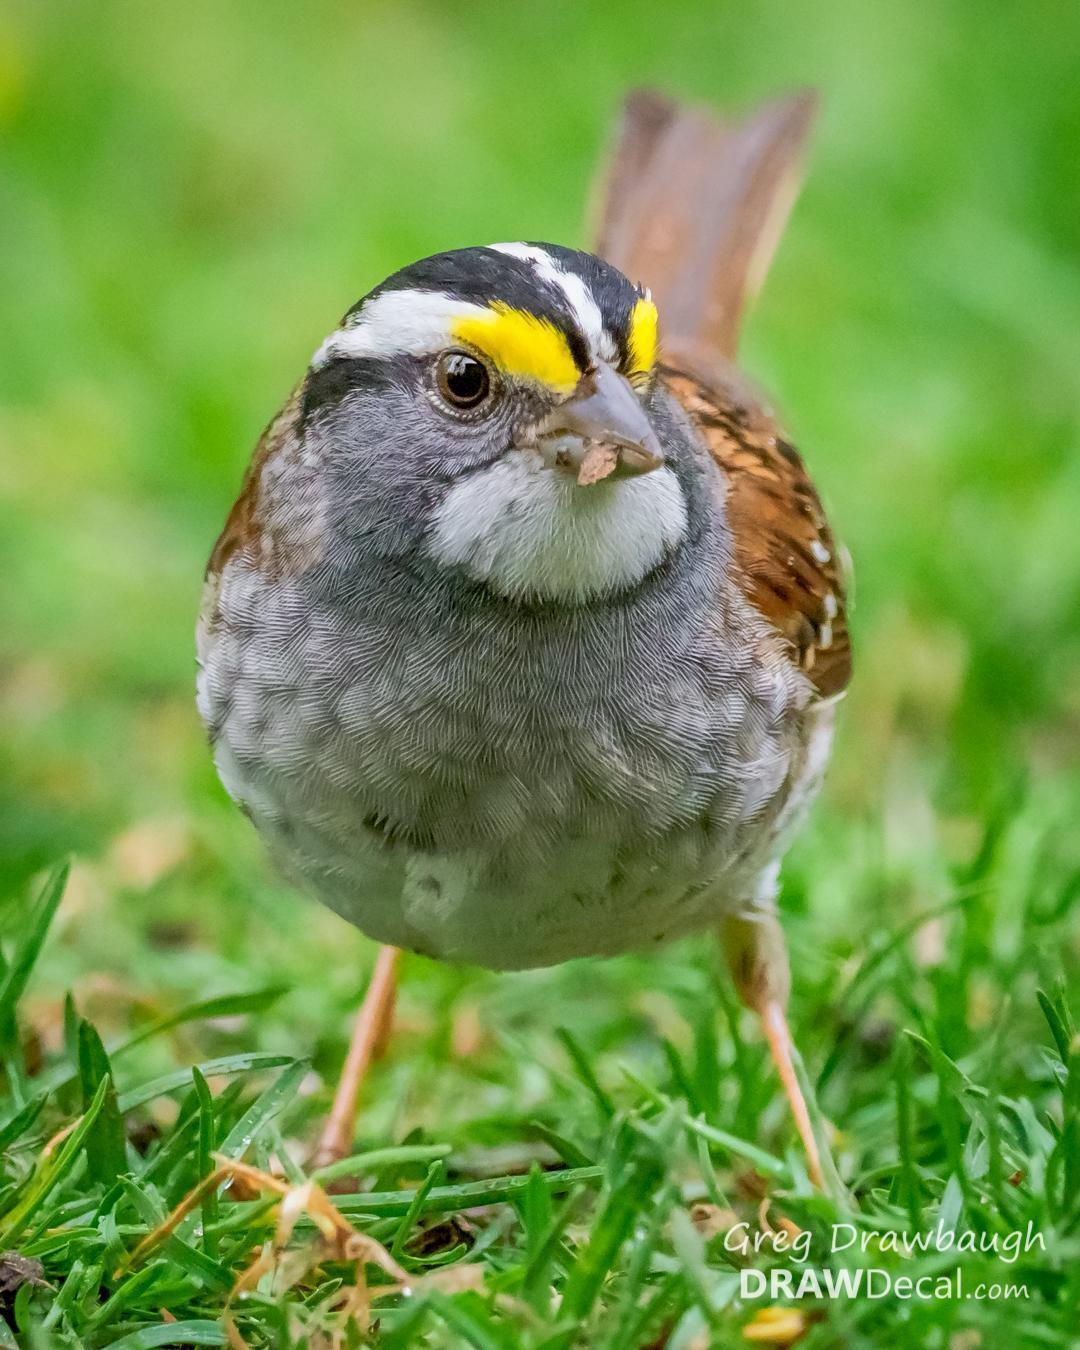 White-throated Sparrow Photo by Greg Drawbaugh